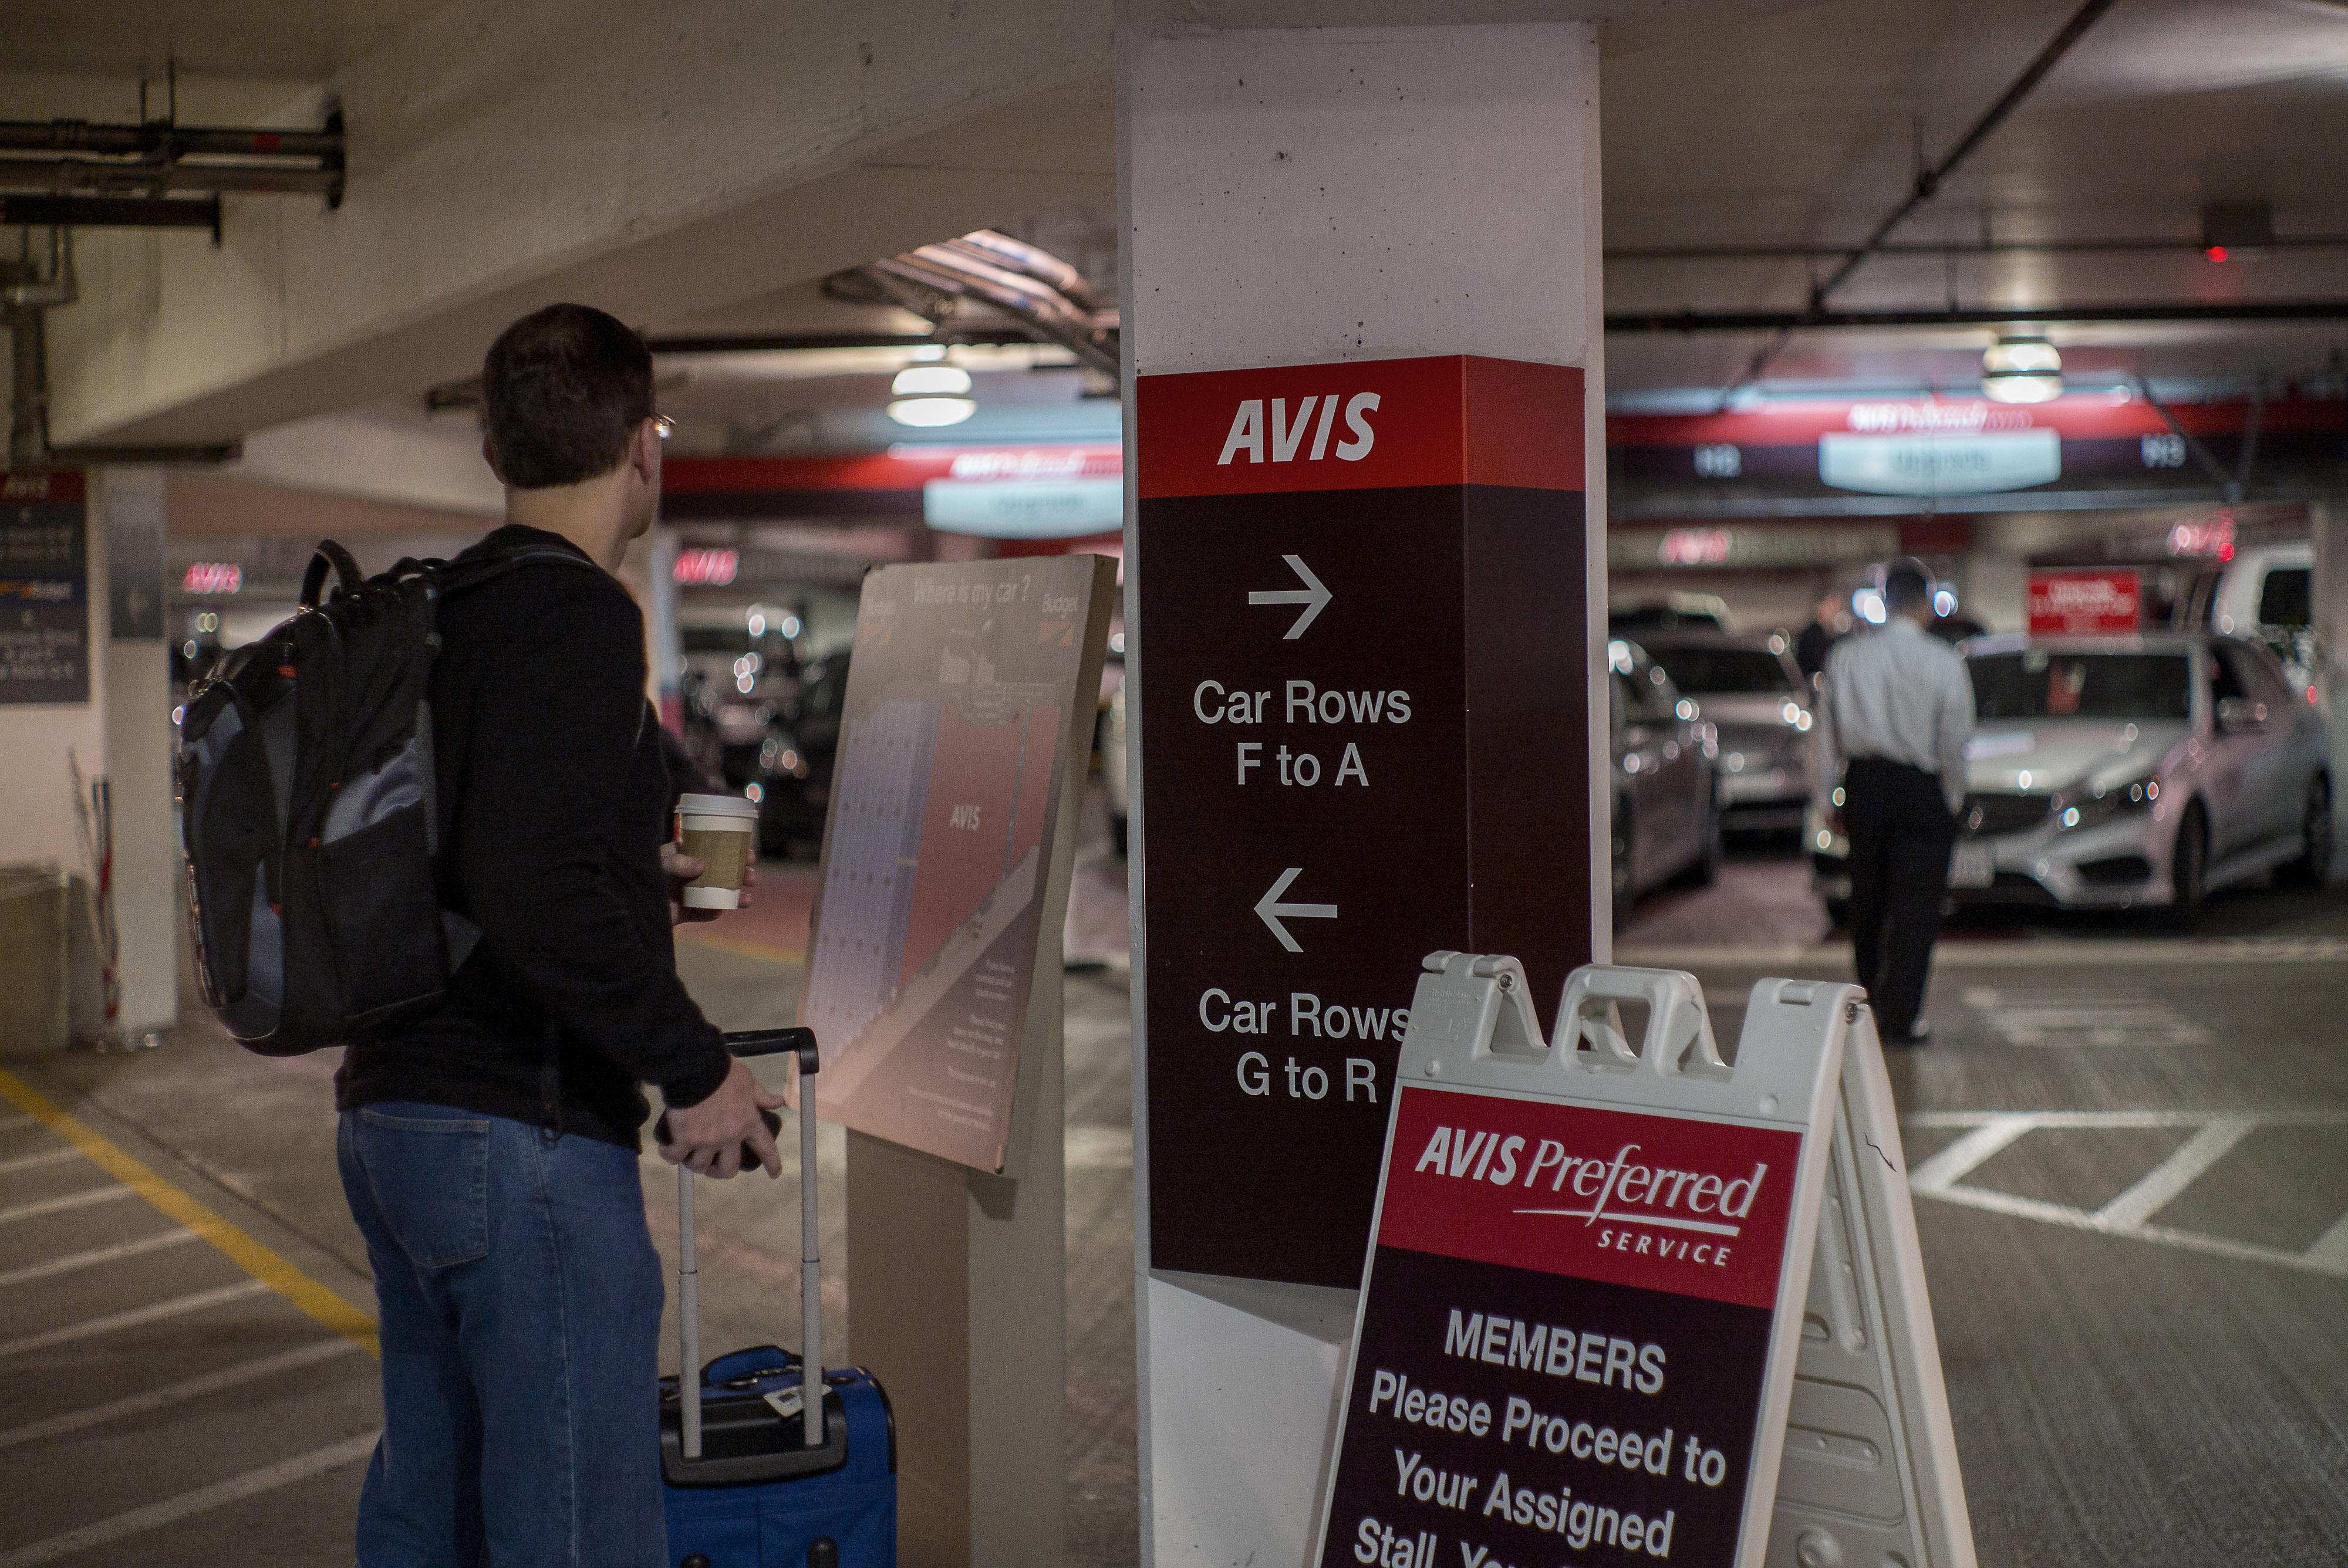 A customer waits for his car to be delivered in the garage of the Avis Budget Group Inc. at the San Francisco International Airport in San Francisco, California, U.S., on Monday, Feb. 16, 2015. Avis Budget Group Inc. is expected to release earnings figures on Feb. 18.  Photographer: David Paul Morris/Bloomberg